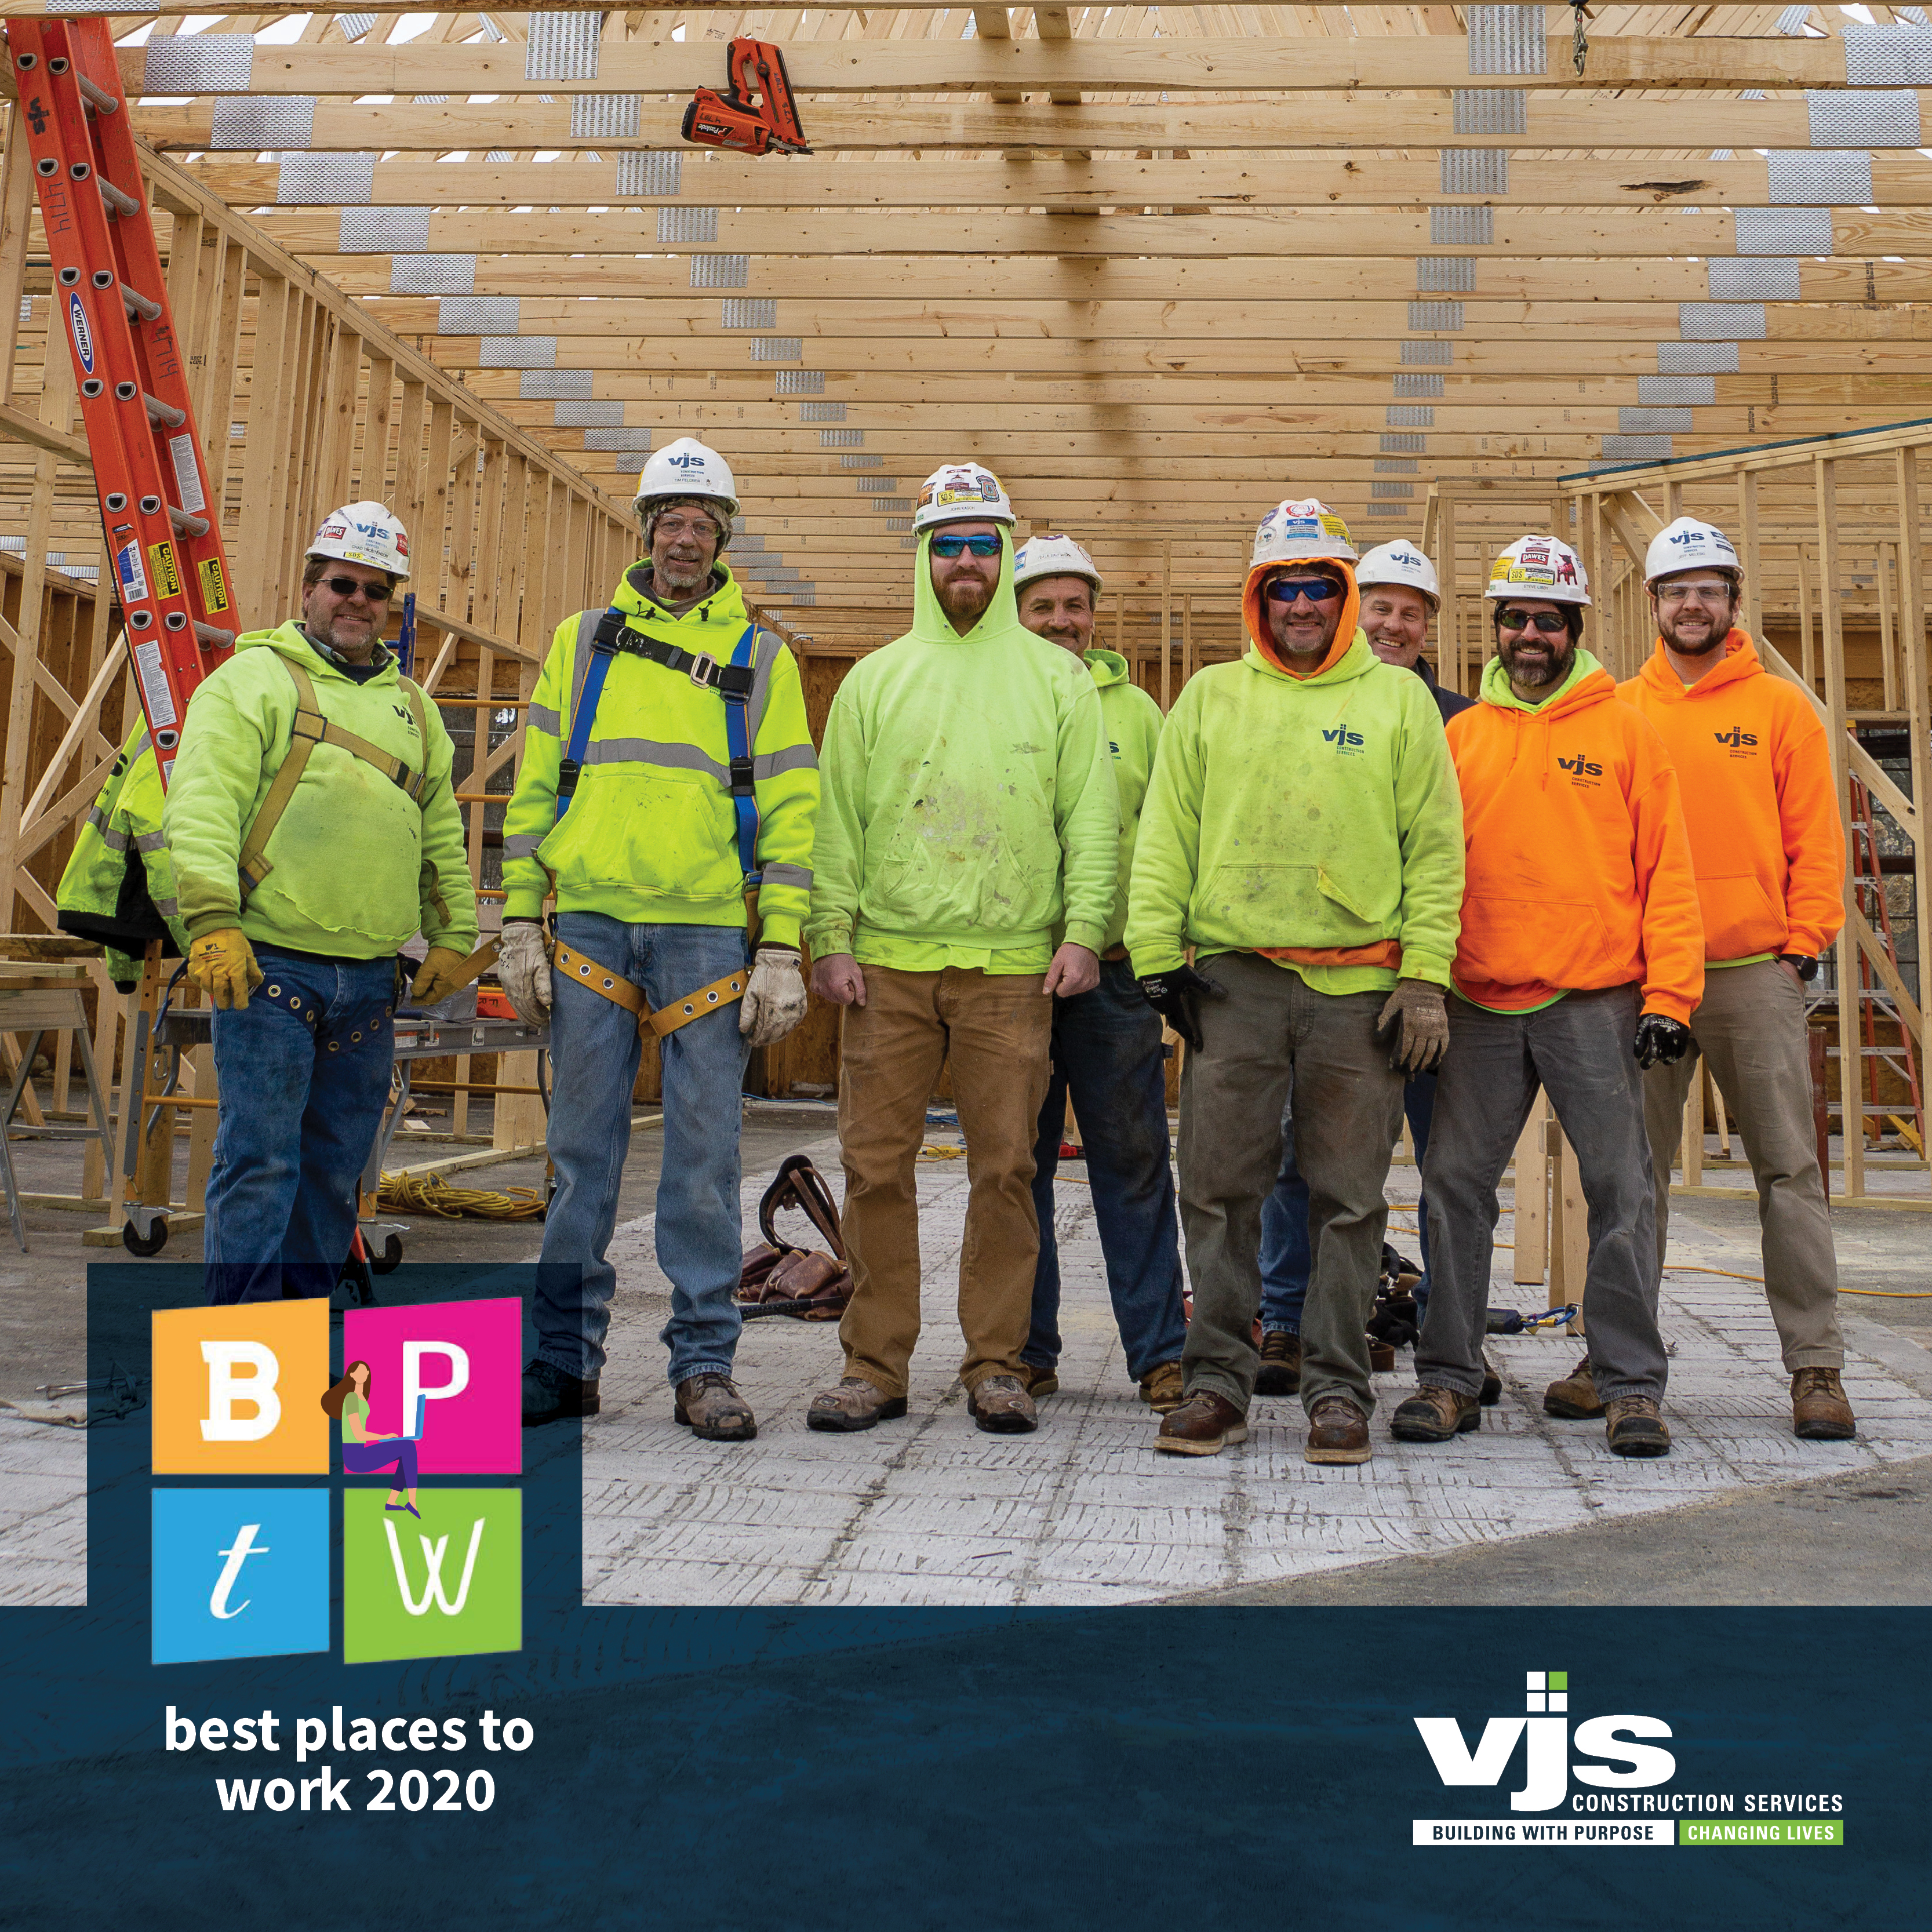 VJS Construction Services Receives 2020 Best Places to Work Award from the Milwaukee Business Journal 1